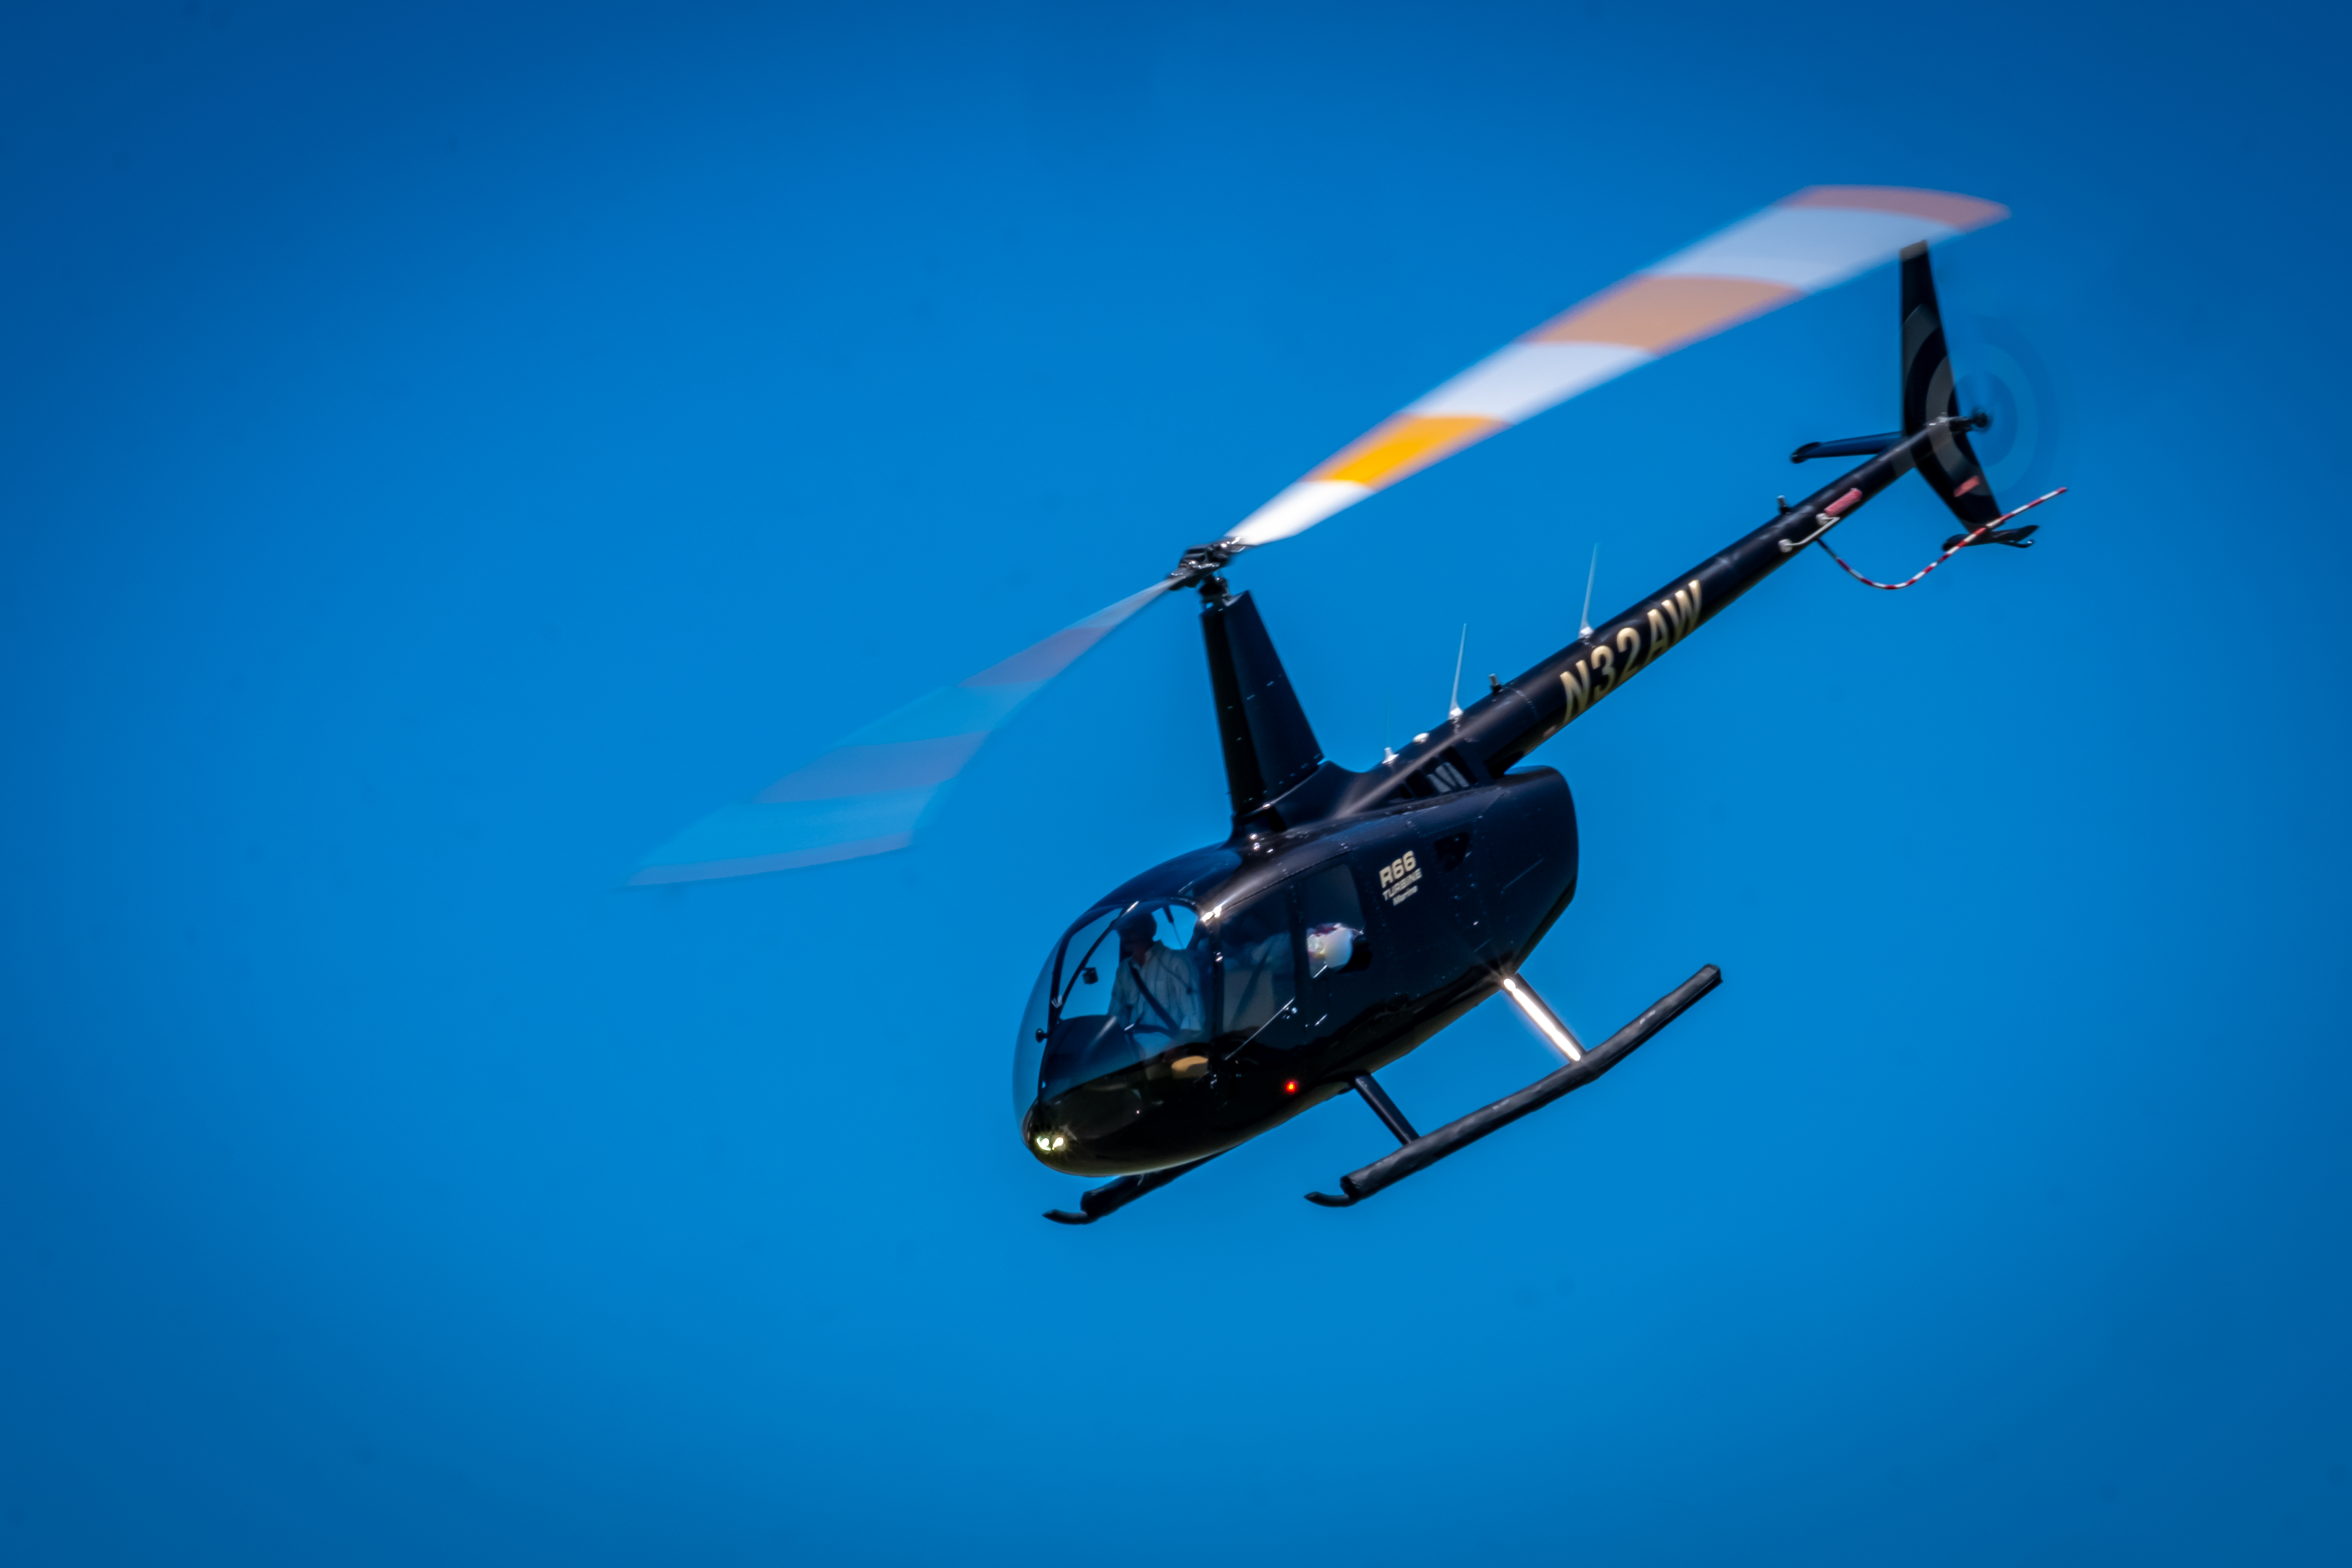 019-Polo-Helicopter-Easter-Egg-Drop-Pilo